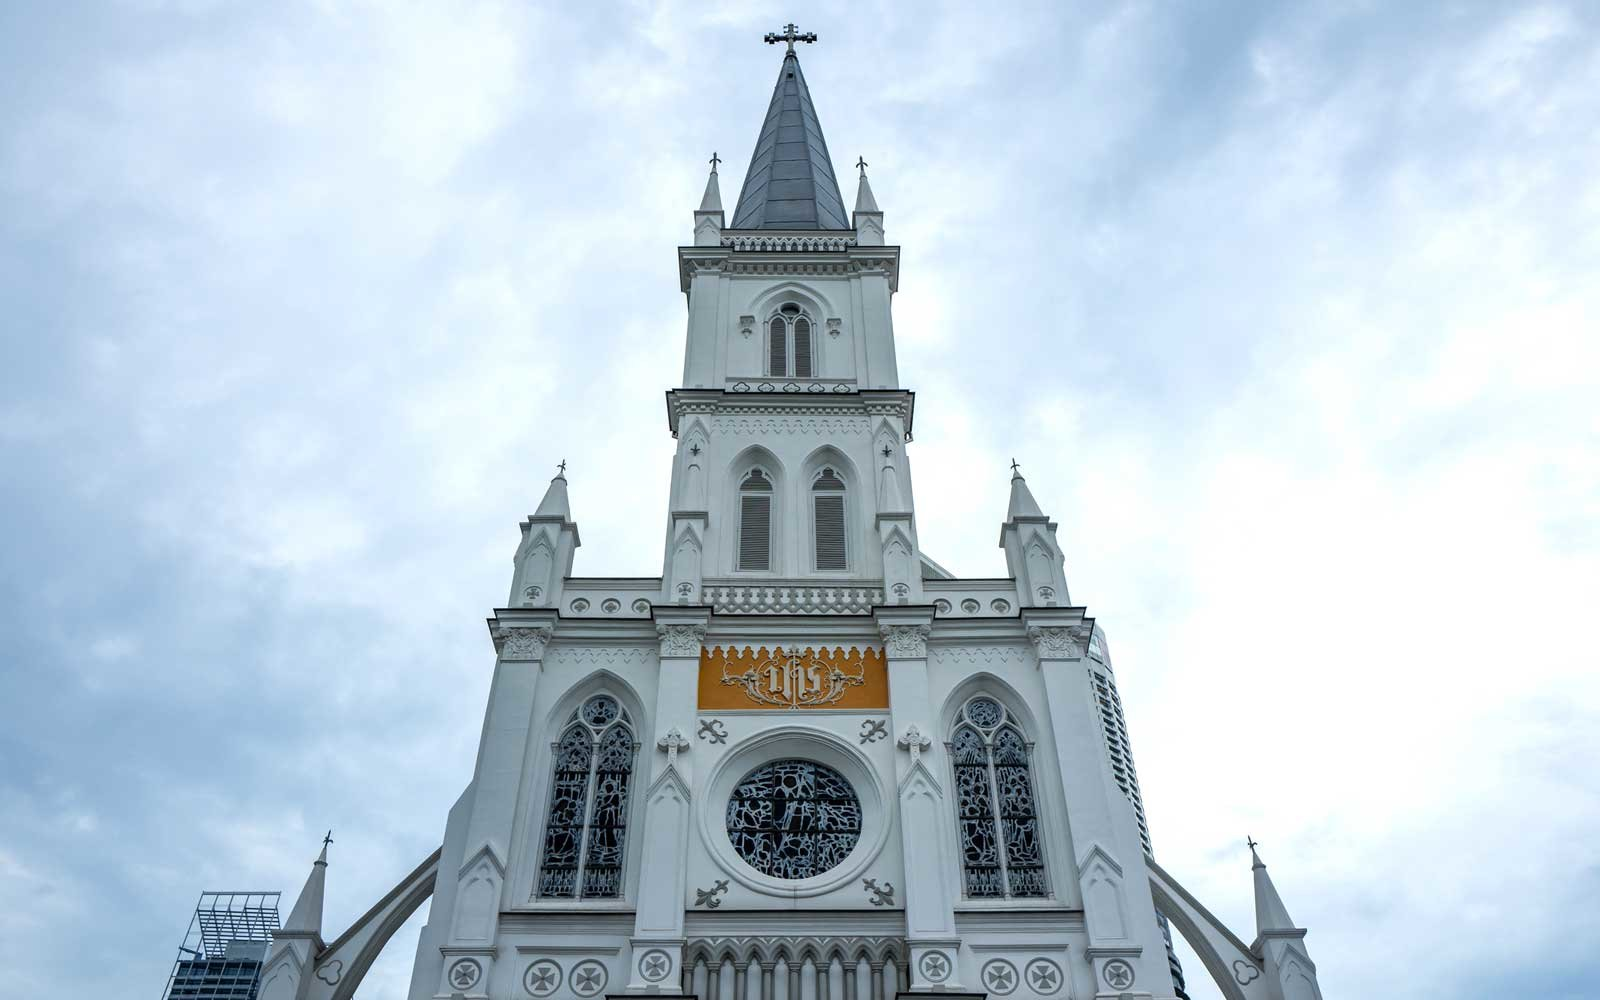 The chijmes building in Singapore